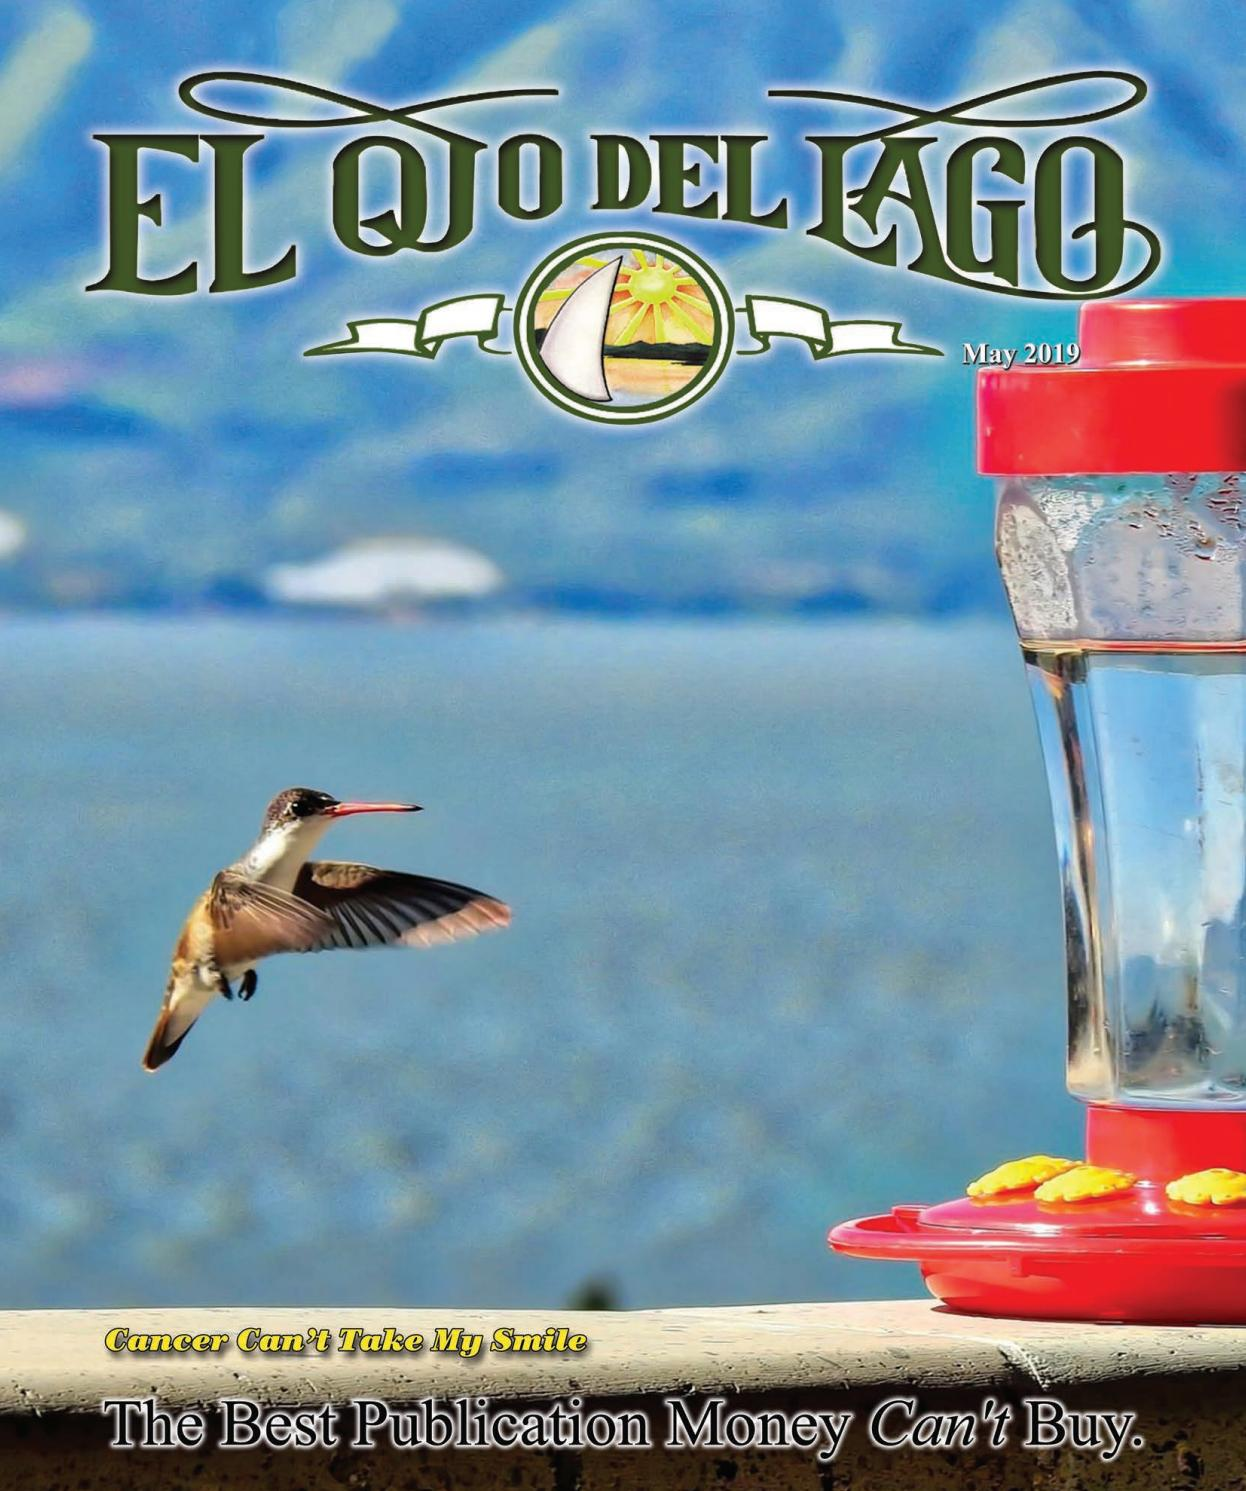 El Ojo del Lago - May 2019 by El Ojo del Lago - issuu